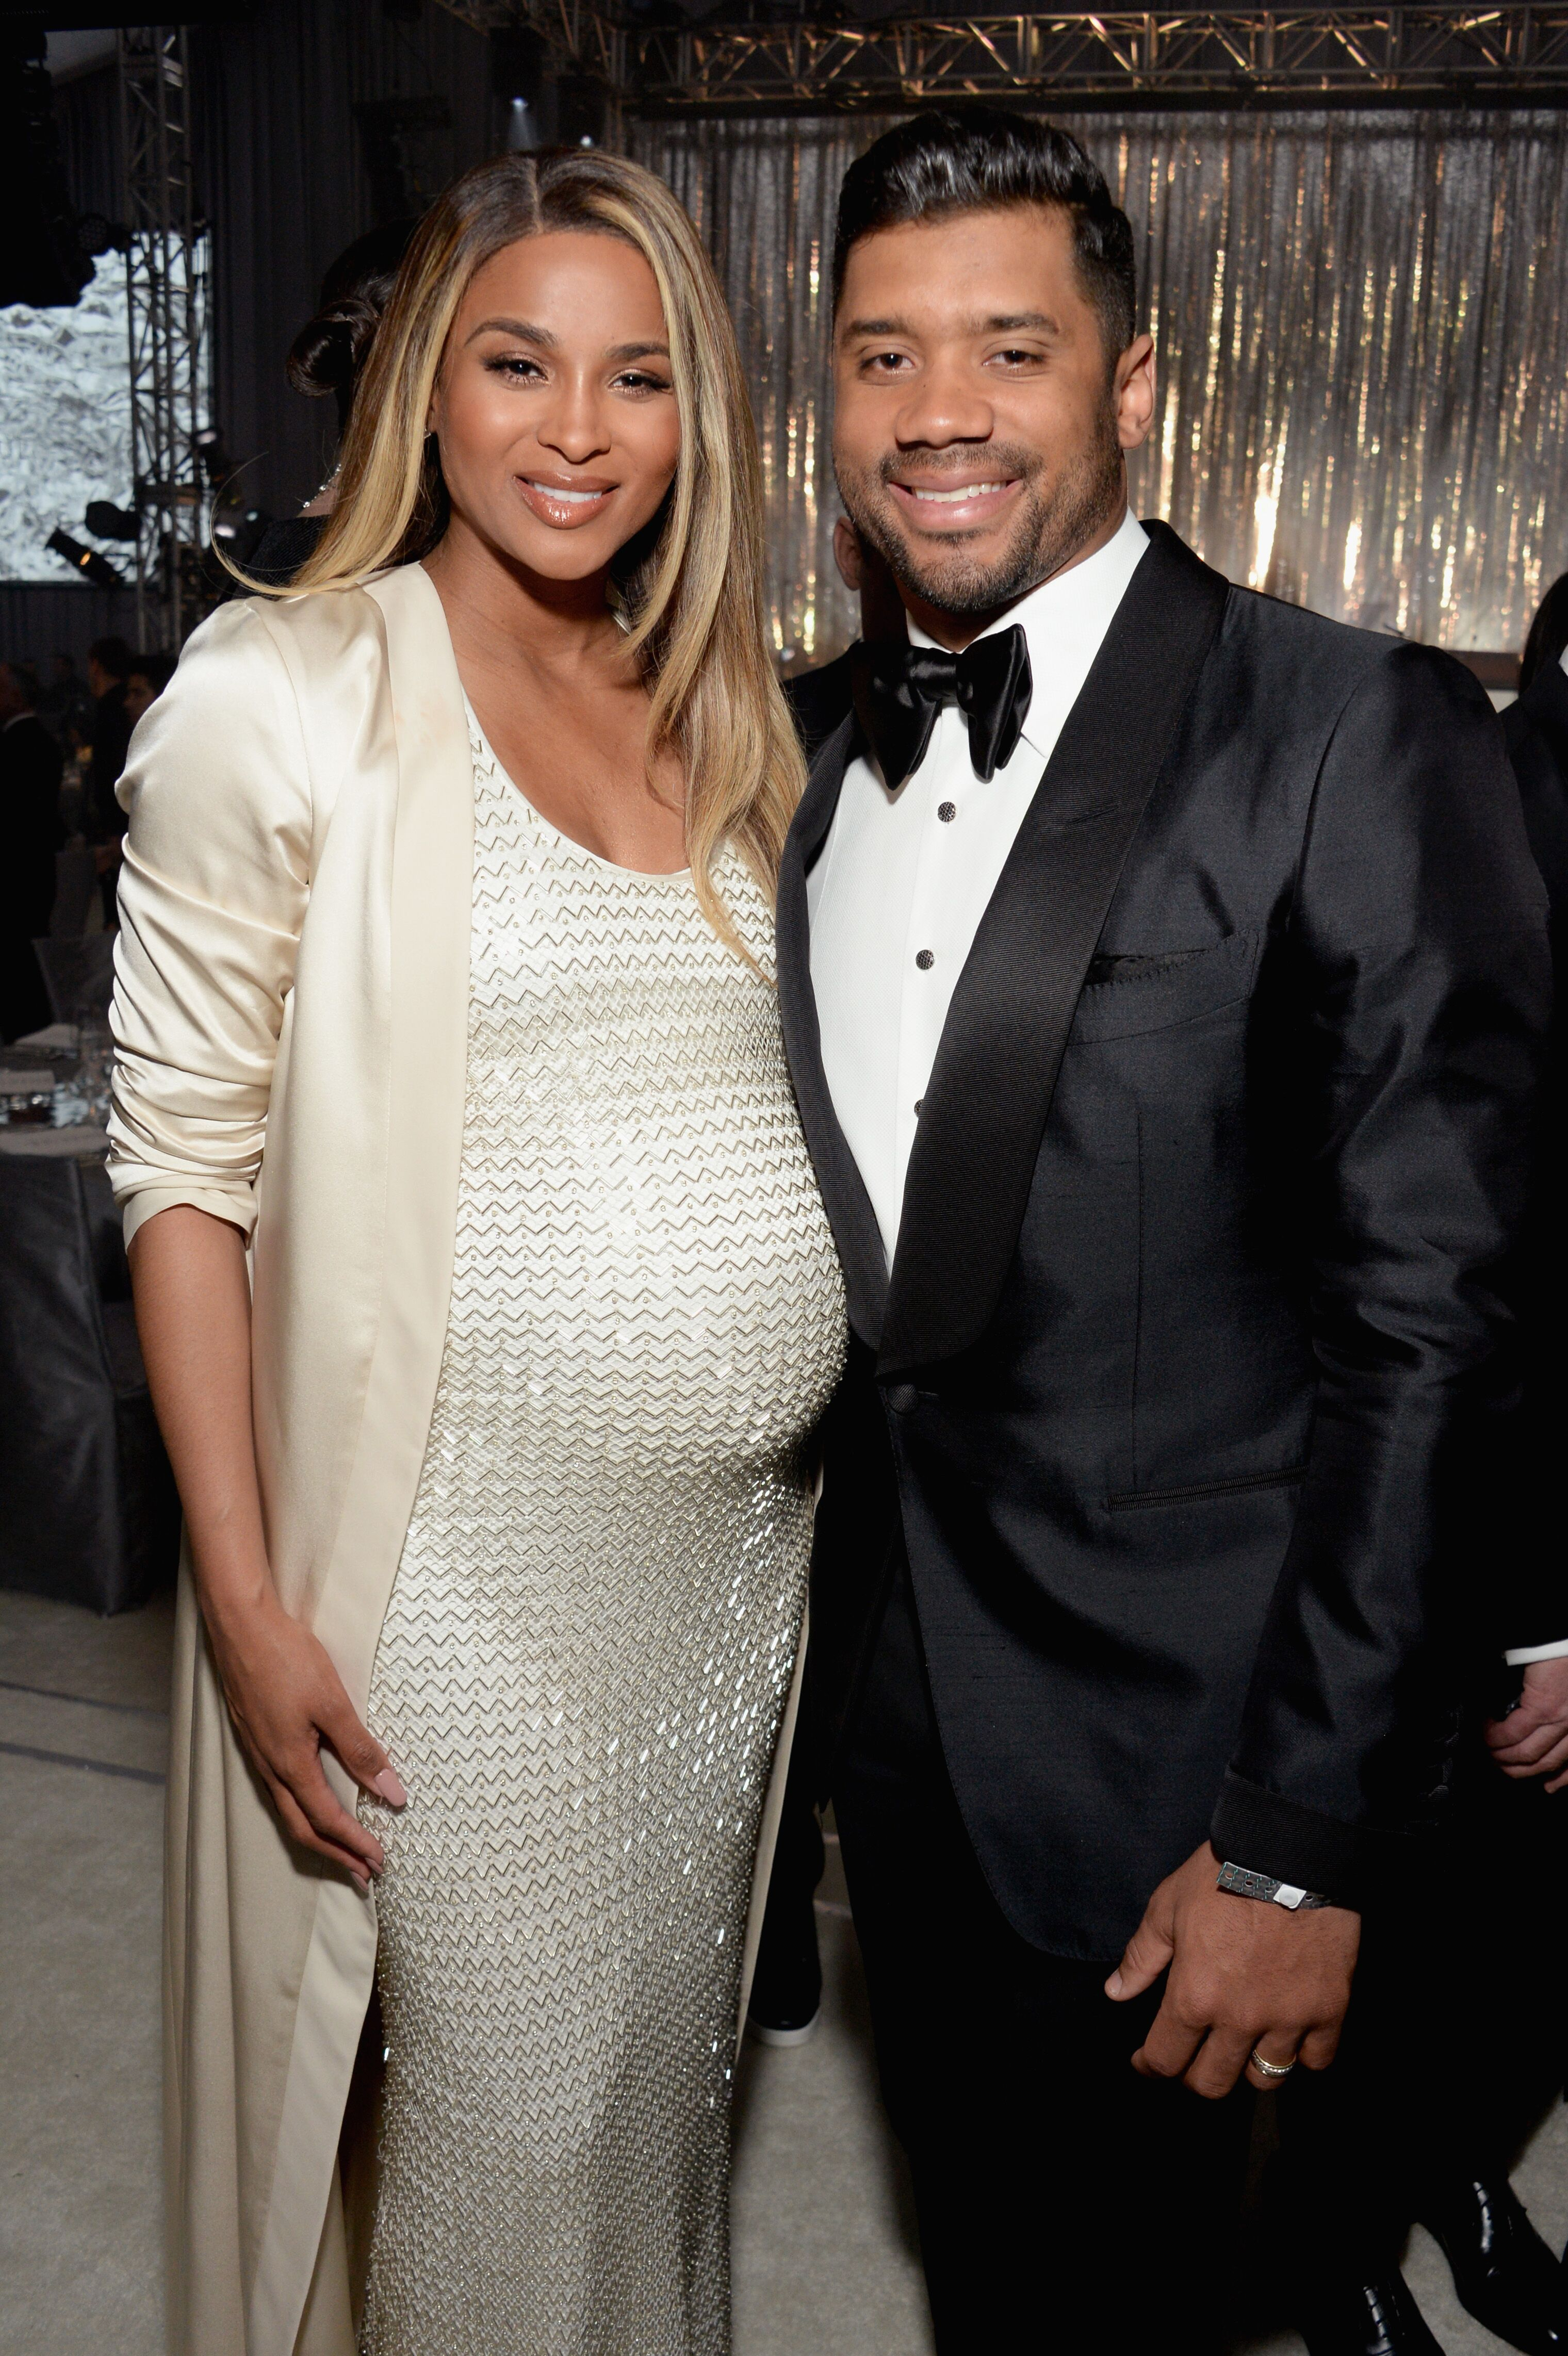 Ciara and Russell Wilson attends the 25th Annual Elton John AIDS Foundation's Academy Awards Viewing Party on February 26, 2017 in West Hollywood, California | Photo: Getty Images